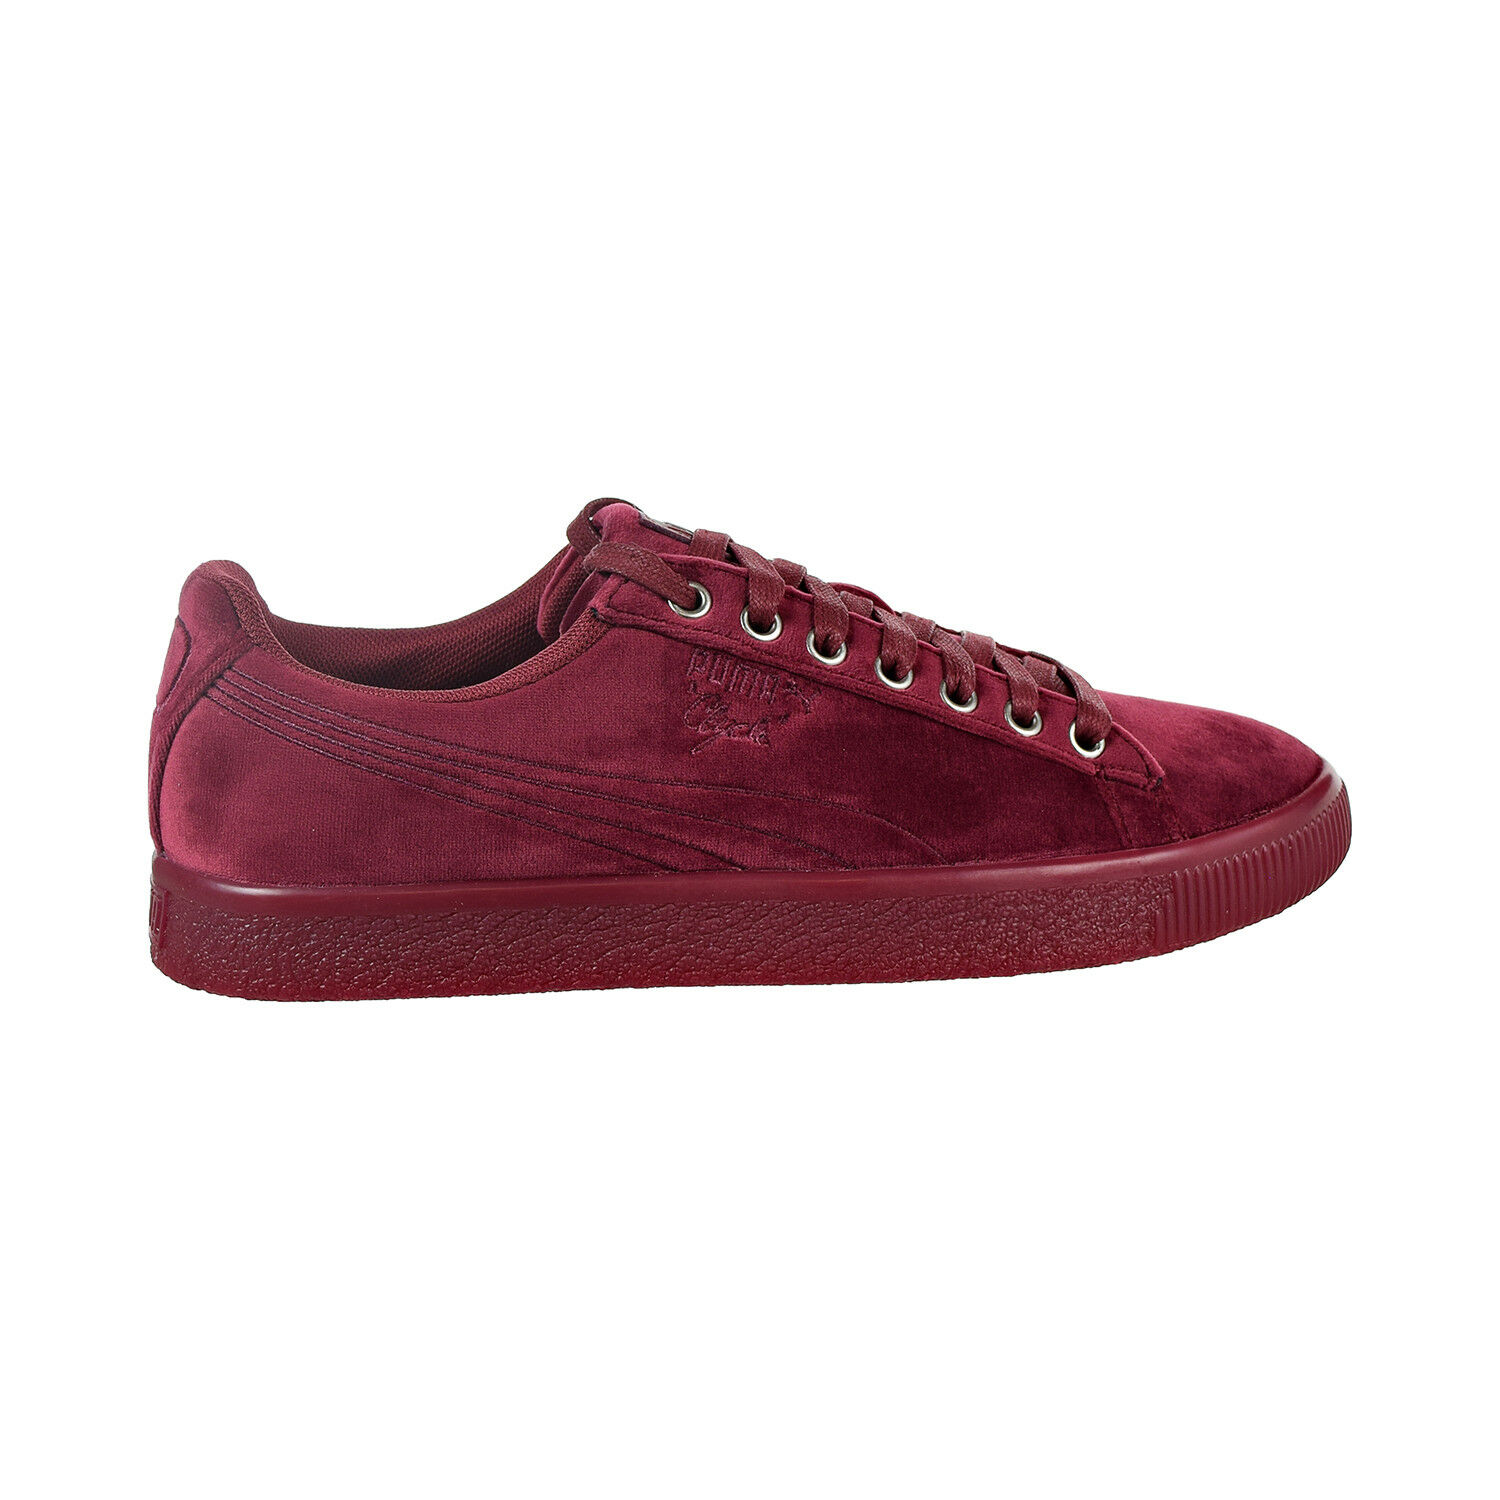 Puma Clyde Velour Ice Men's shoes Tibetan Red 366549-04